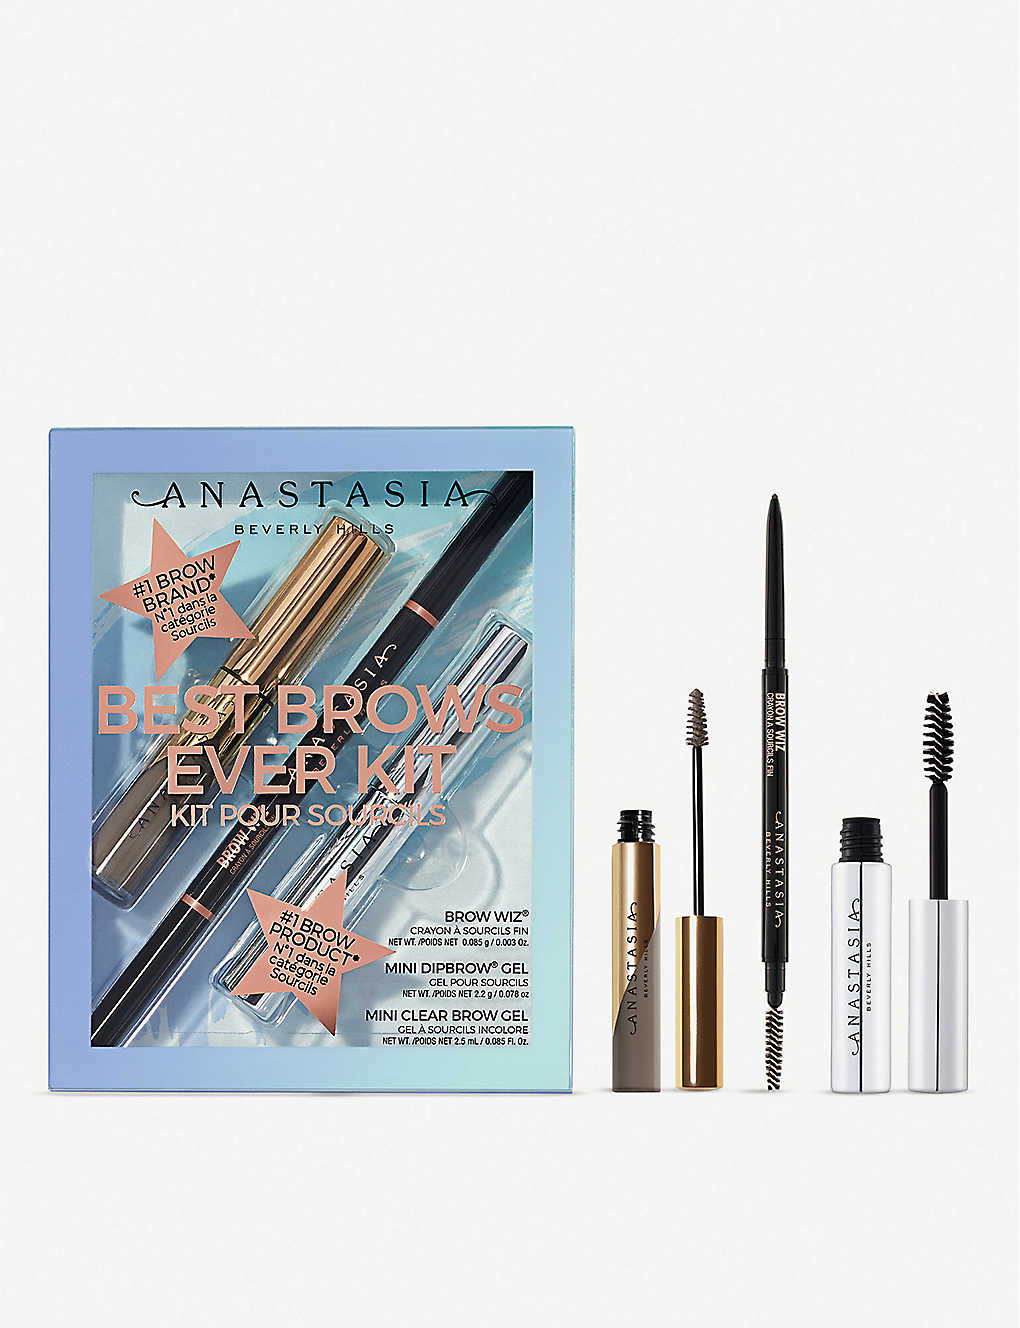 ANASTASIA BEVERLY HILLS: Best Brows Ever eyebrow kit